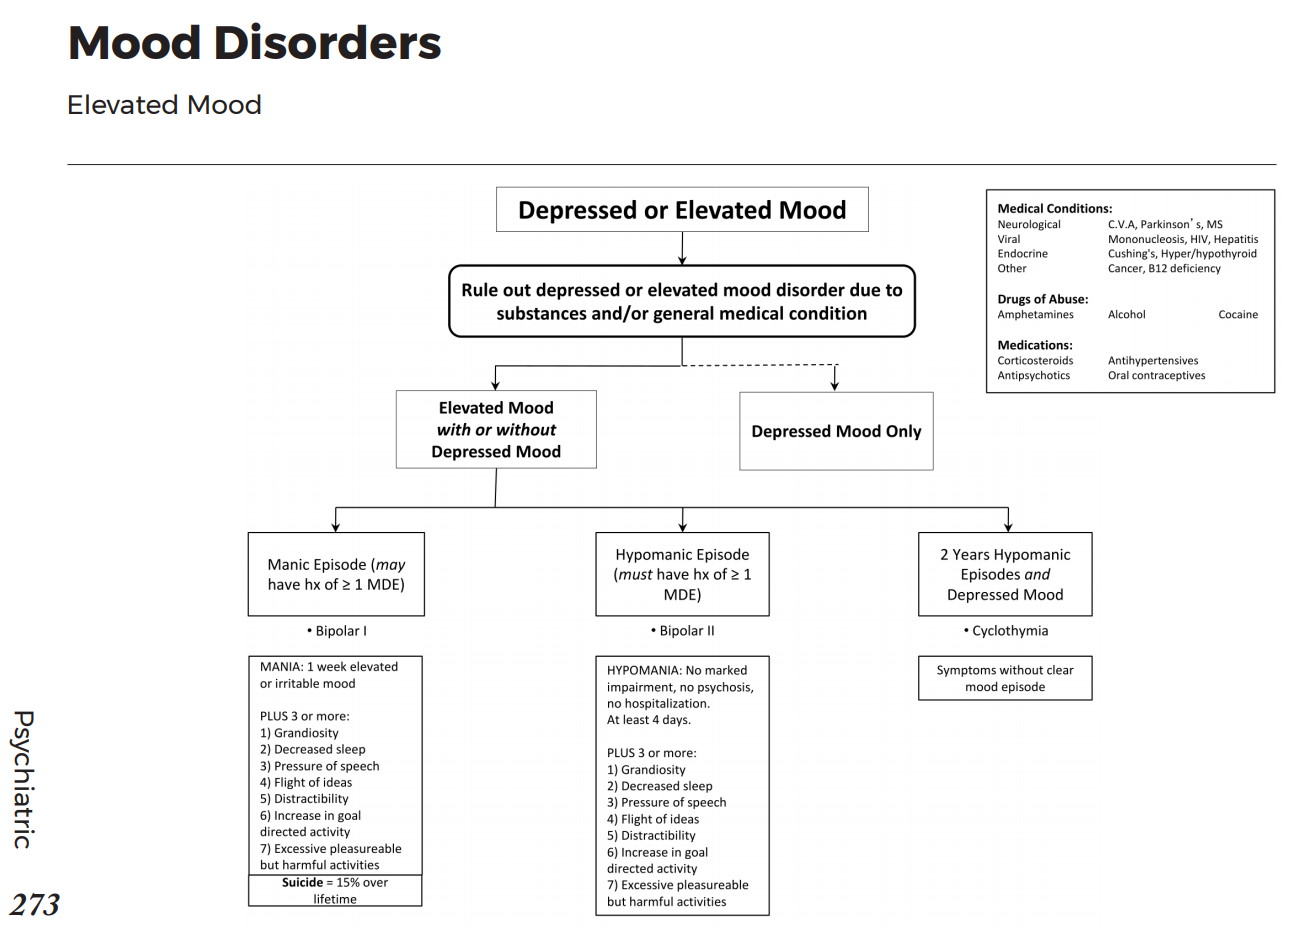 Bipolar And Mania Causes Of Elevated Mood Disorders Differential Diagnosis